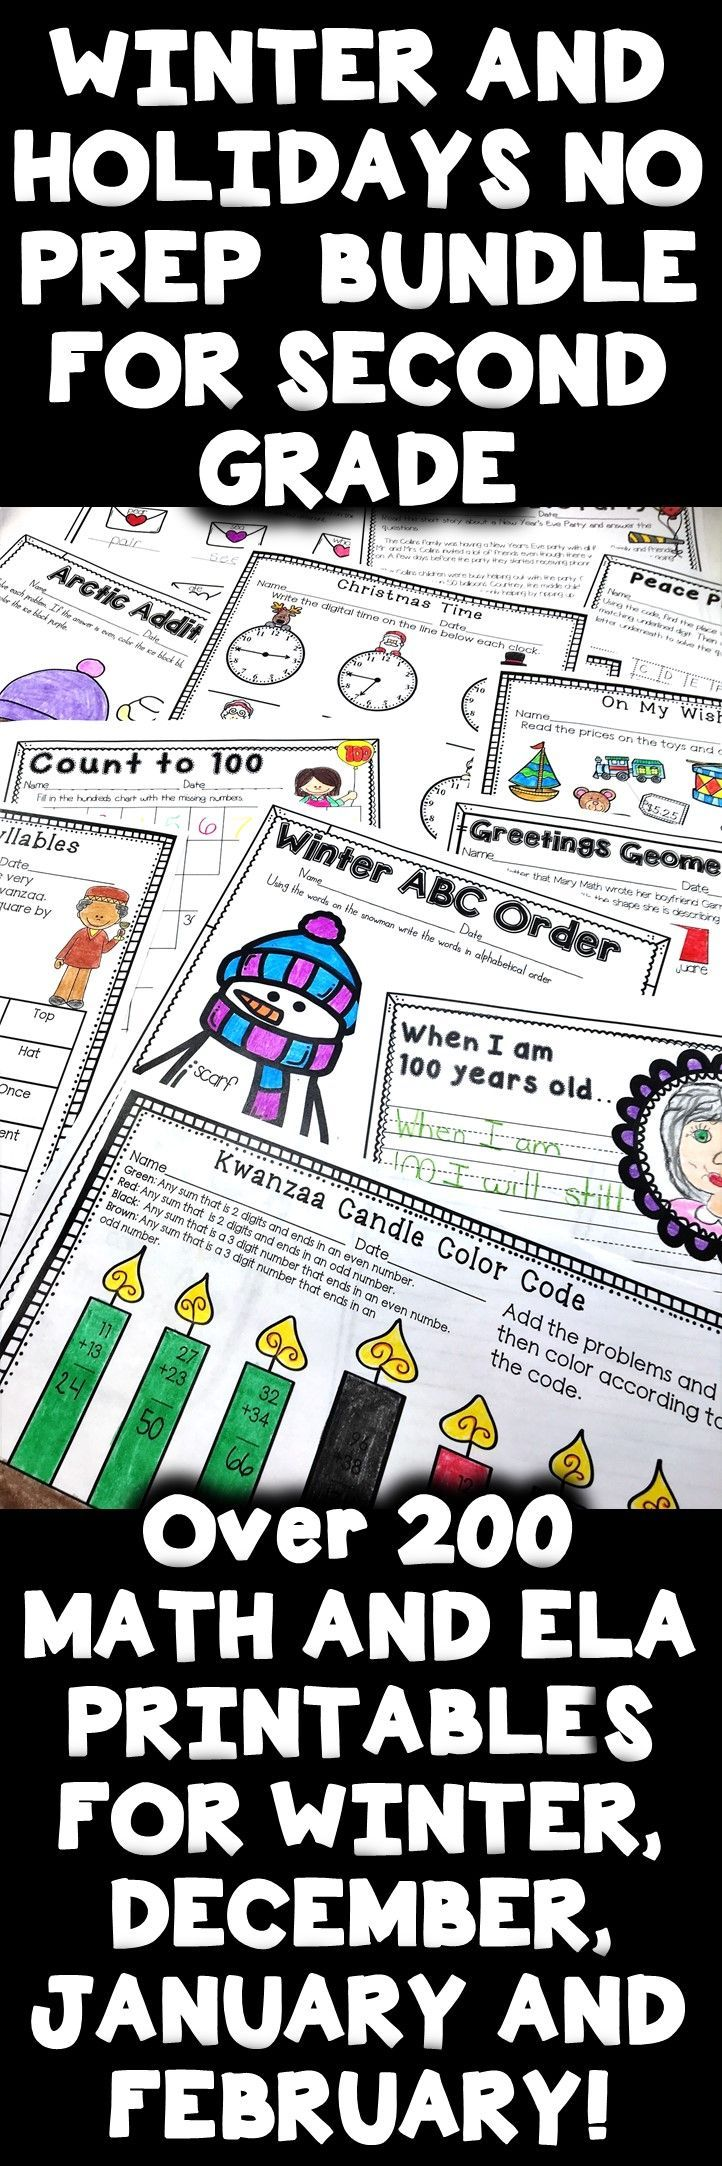 Second Grade Winter And Holidays Literacy And Math No Prep Bundle Is Jam Packed With Printables For December January And February A Second Grade Math Literacy